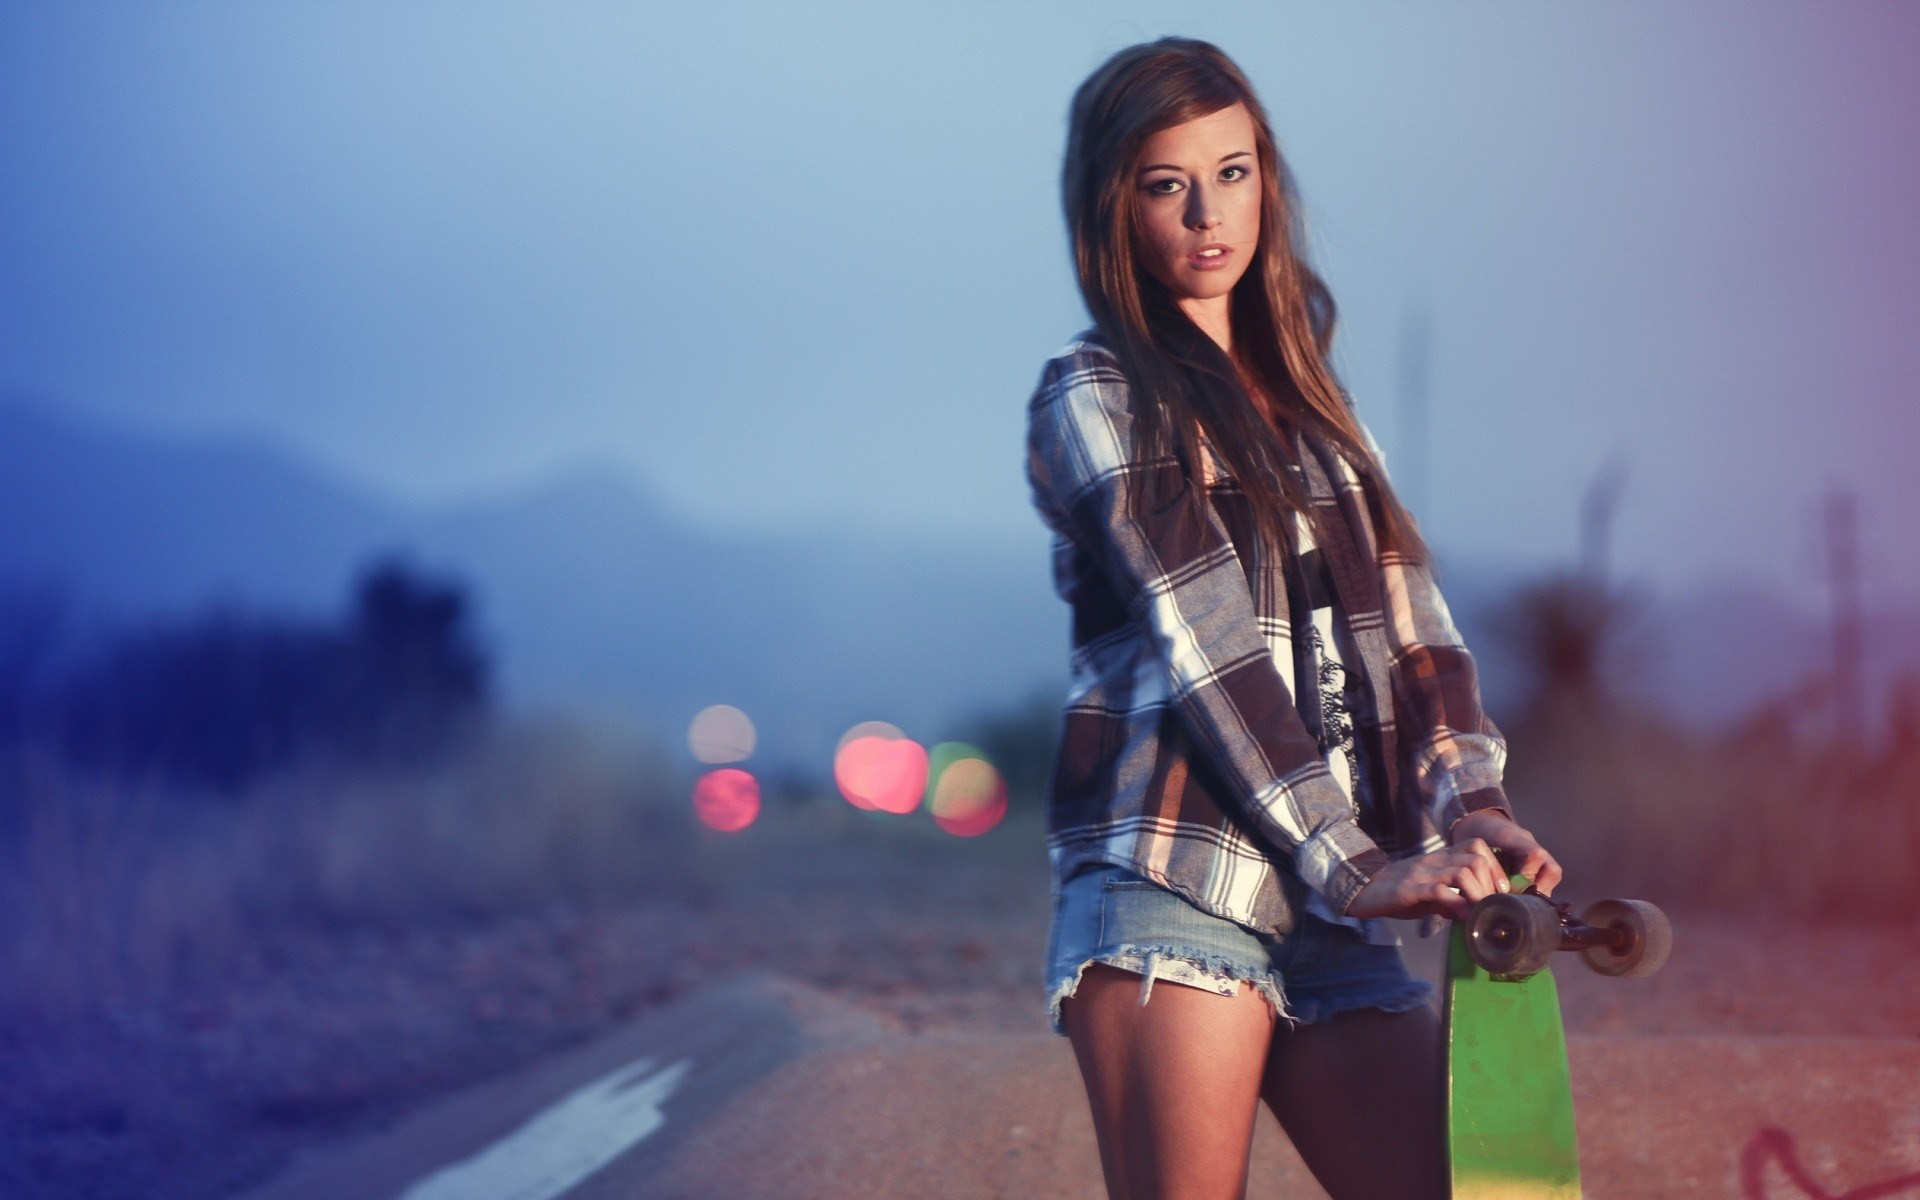 Pretty Girl Swag Wallpapers